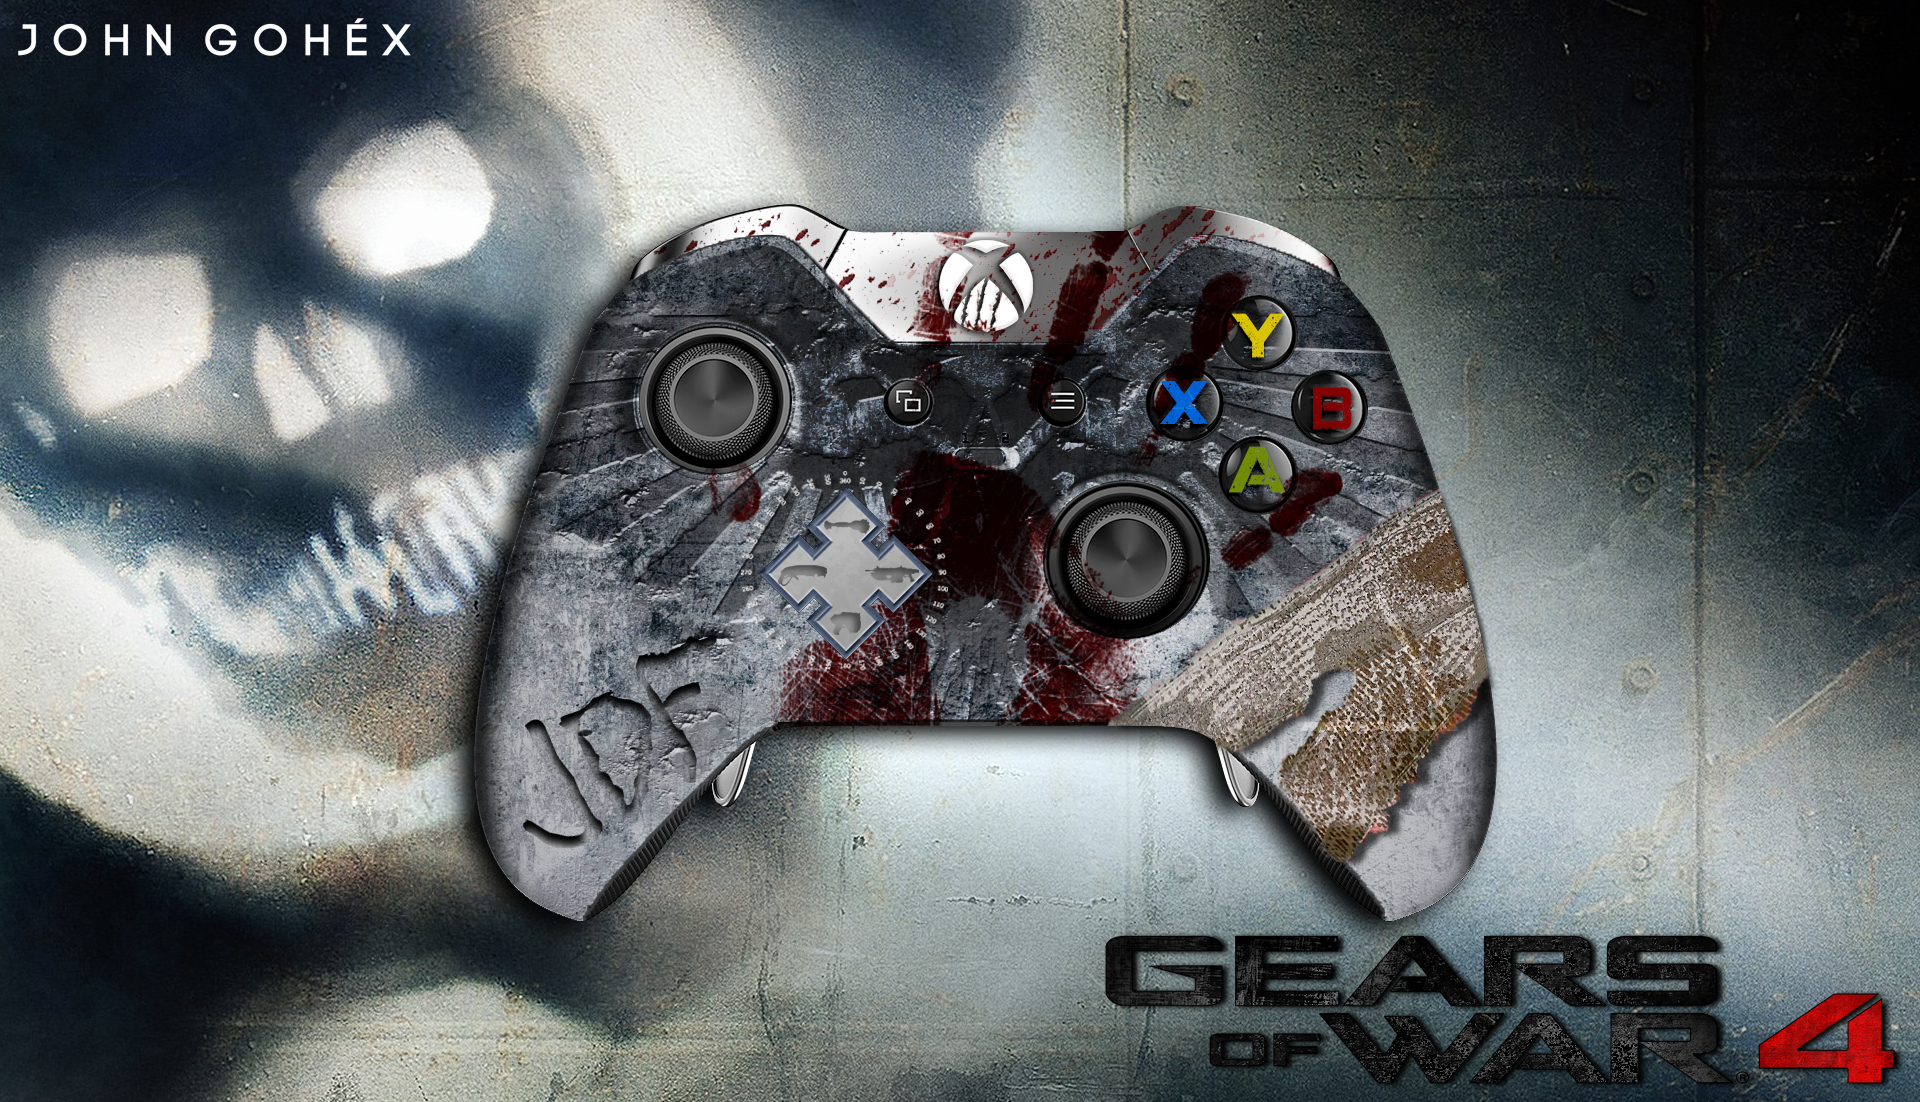 gears of war 4 jd fenix controller xbox one by johngohex. Black Bedroom Furniture Sets. Home Design Ideas